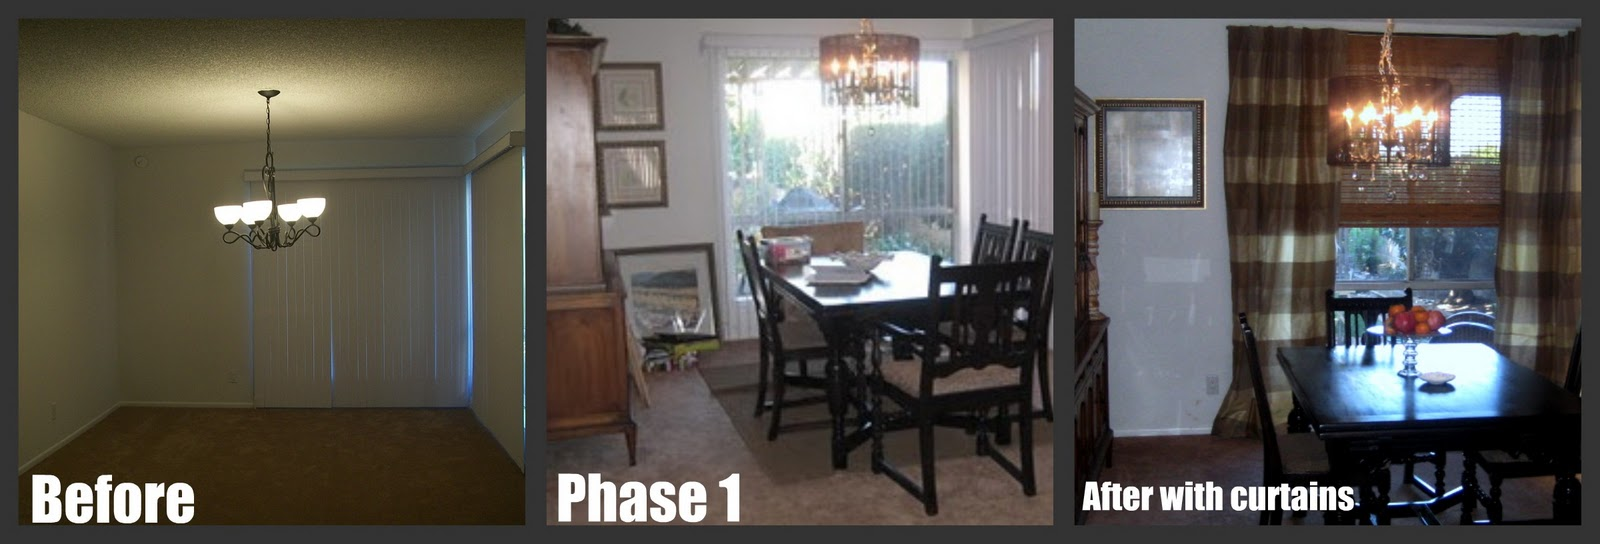 Professional Home Staging Interior Design My Top 2010 Before And Afters